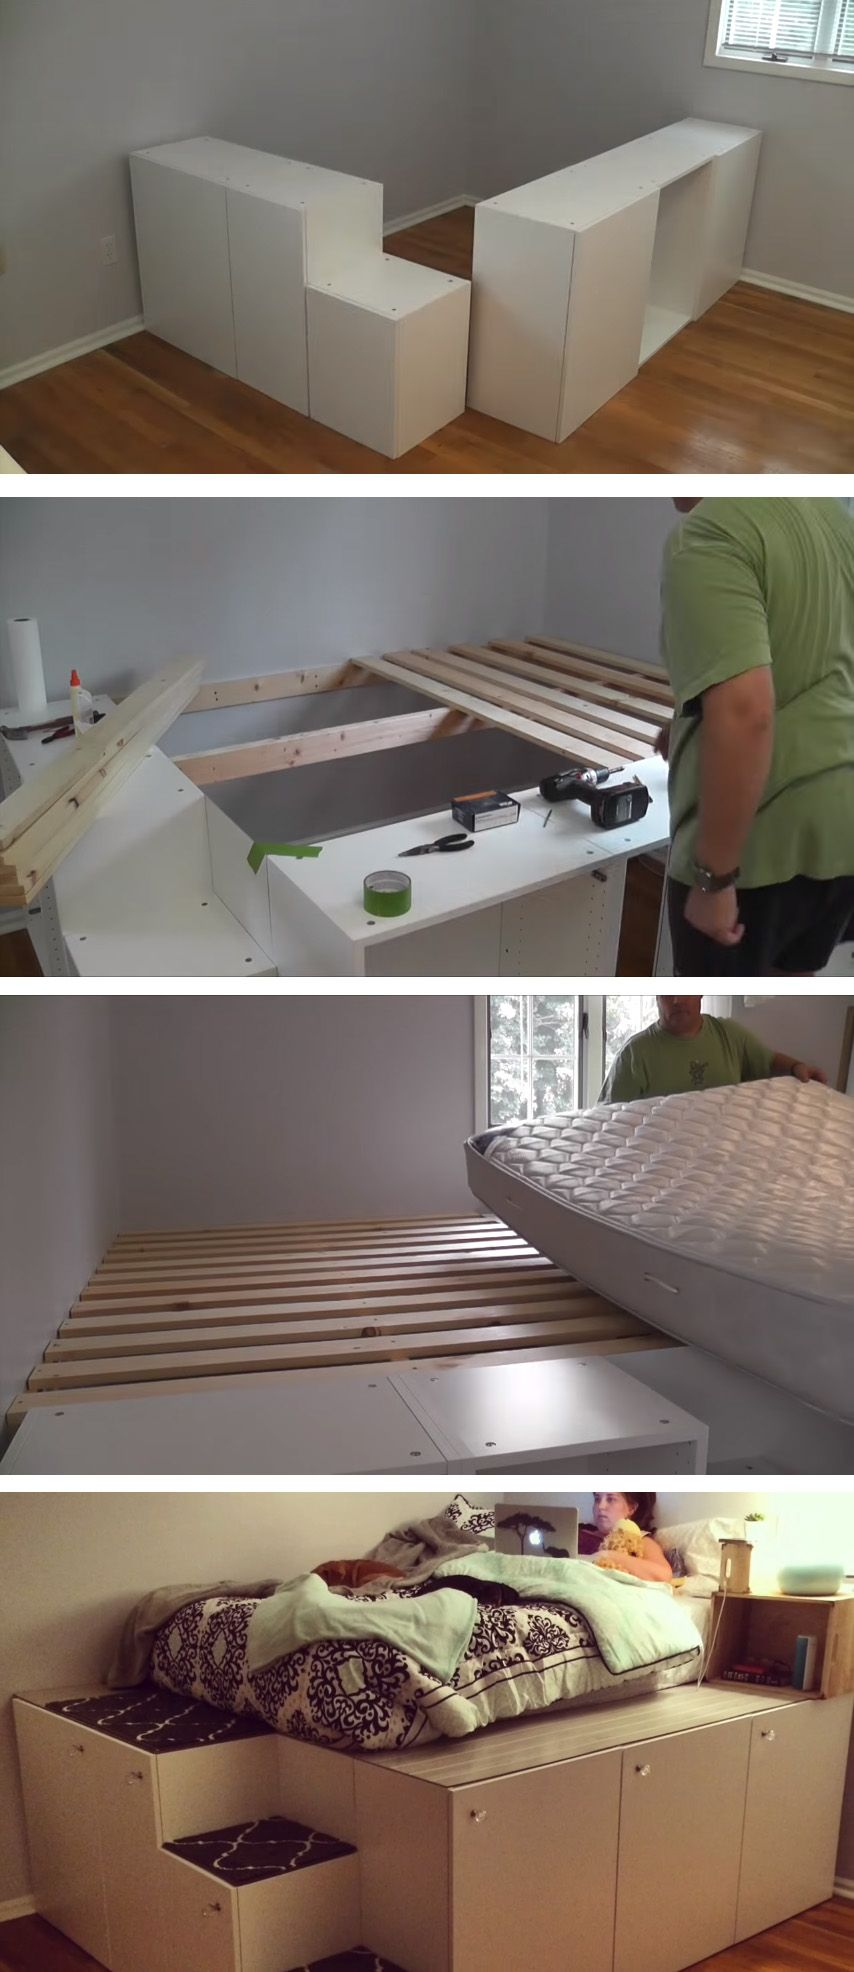 Watch This Guy Transform Ikea Kitchen Cabinets Into A Platform Bed With Storage Diy Platform Bed Bedroom Diy Home Projects